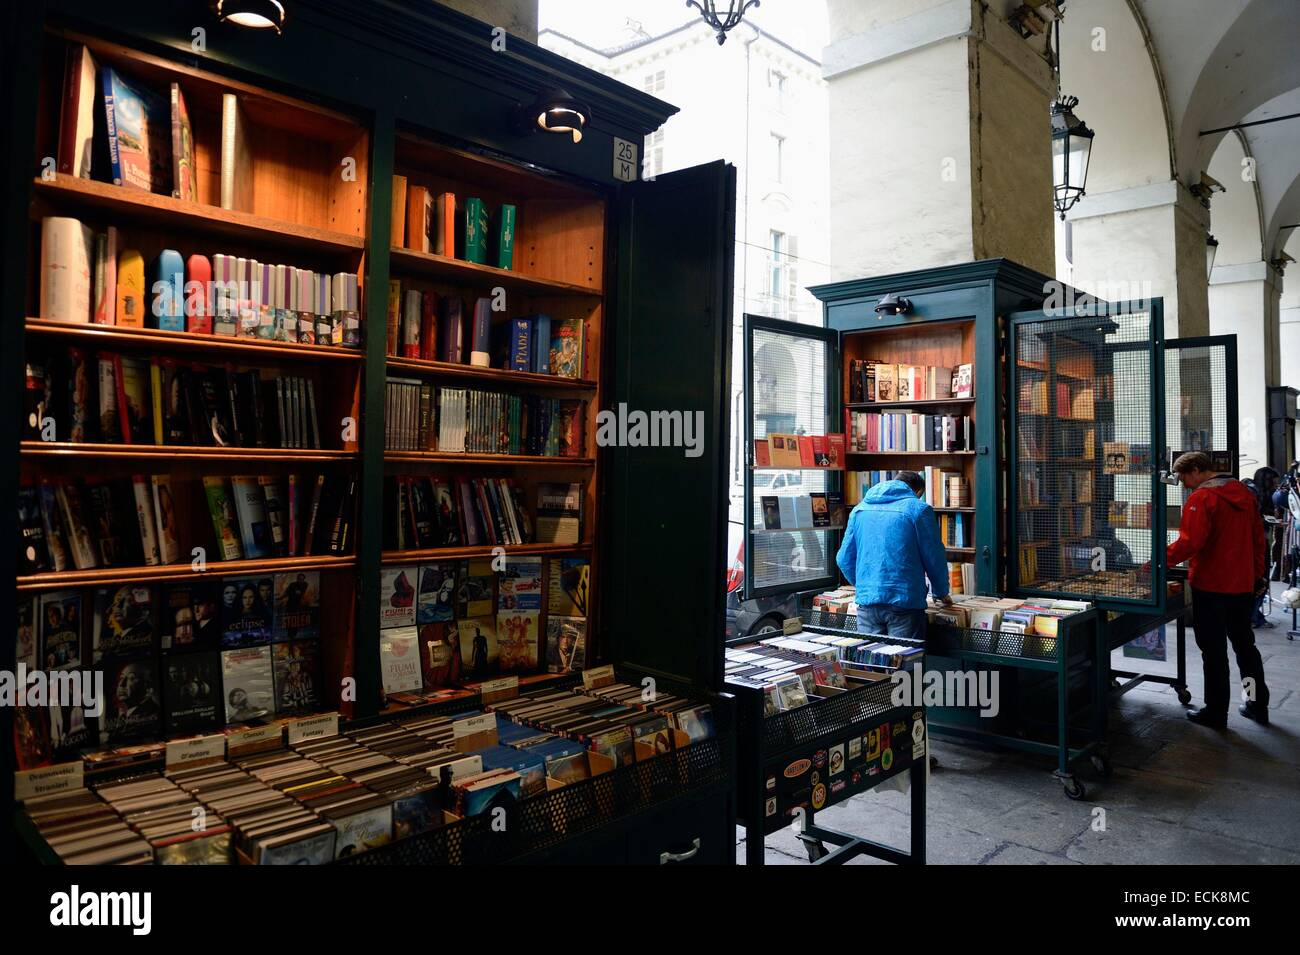 Italy, Piedmont, Turin, booksellers of Via Roma - Stock Image